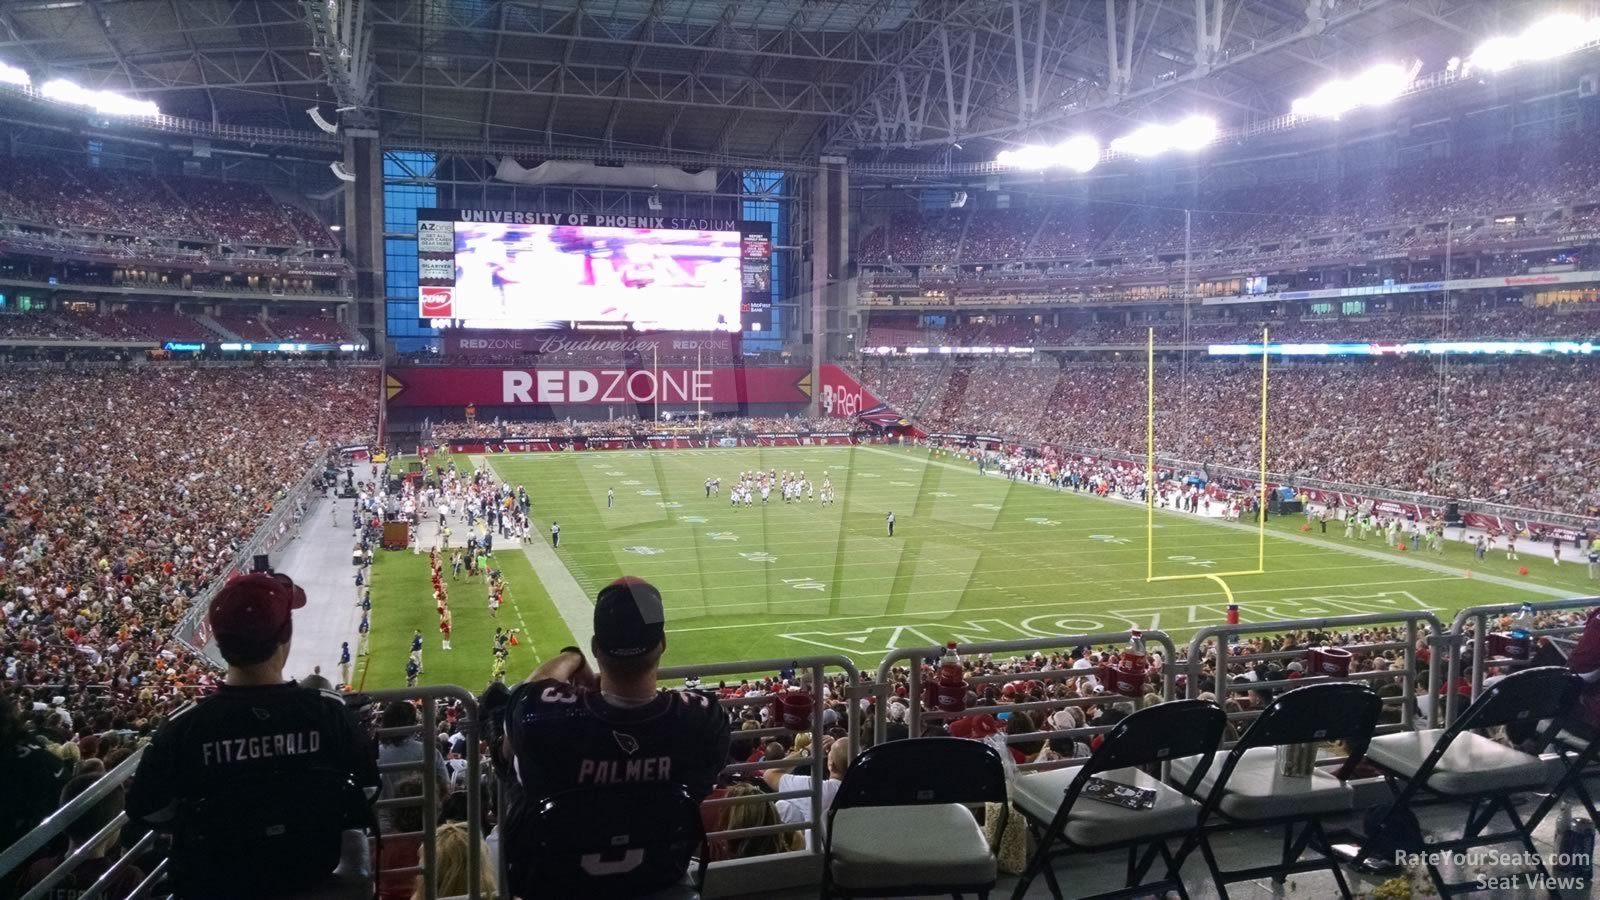 View from the Handicap seating area in Section 122